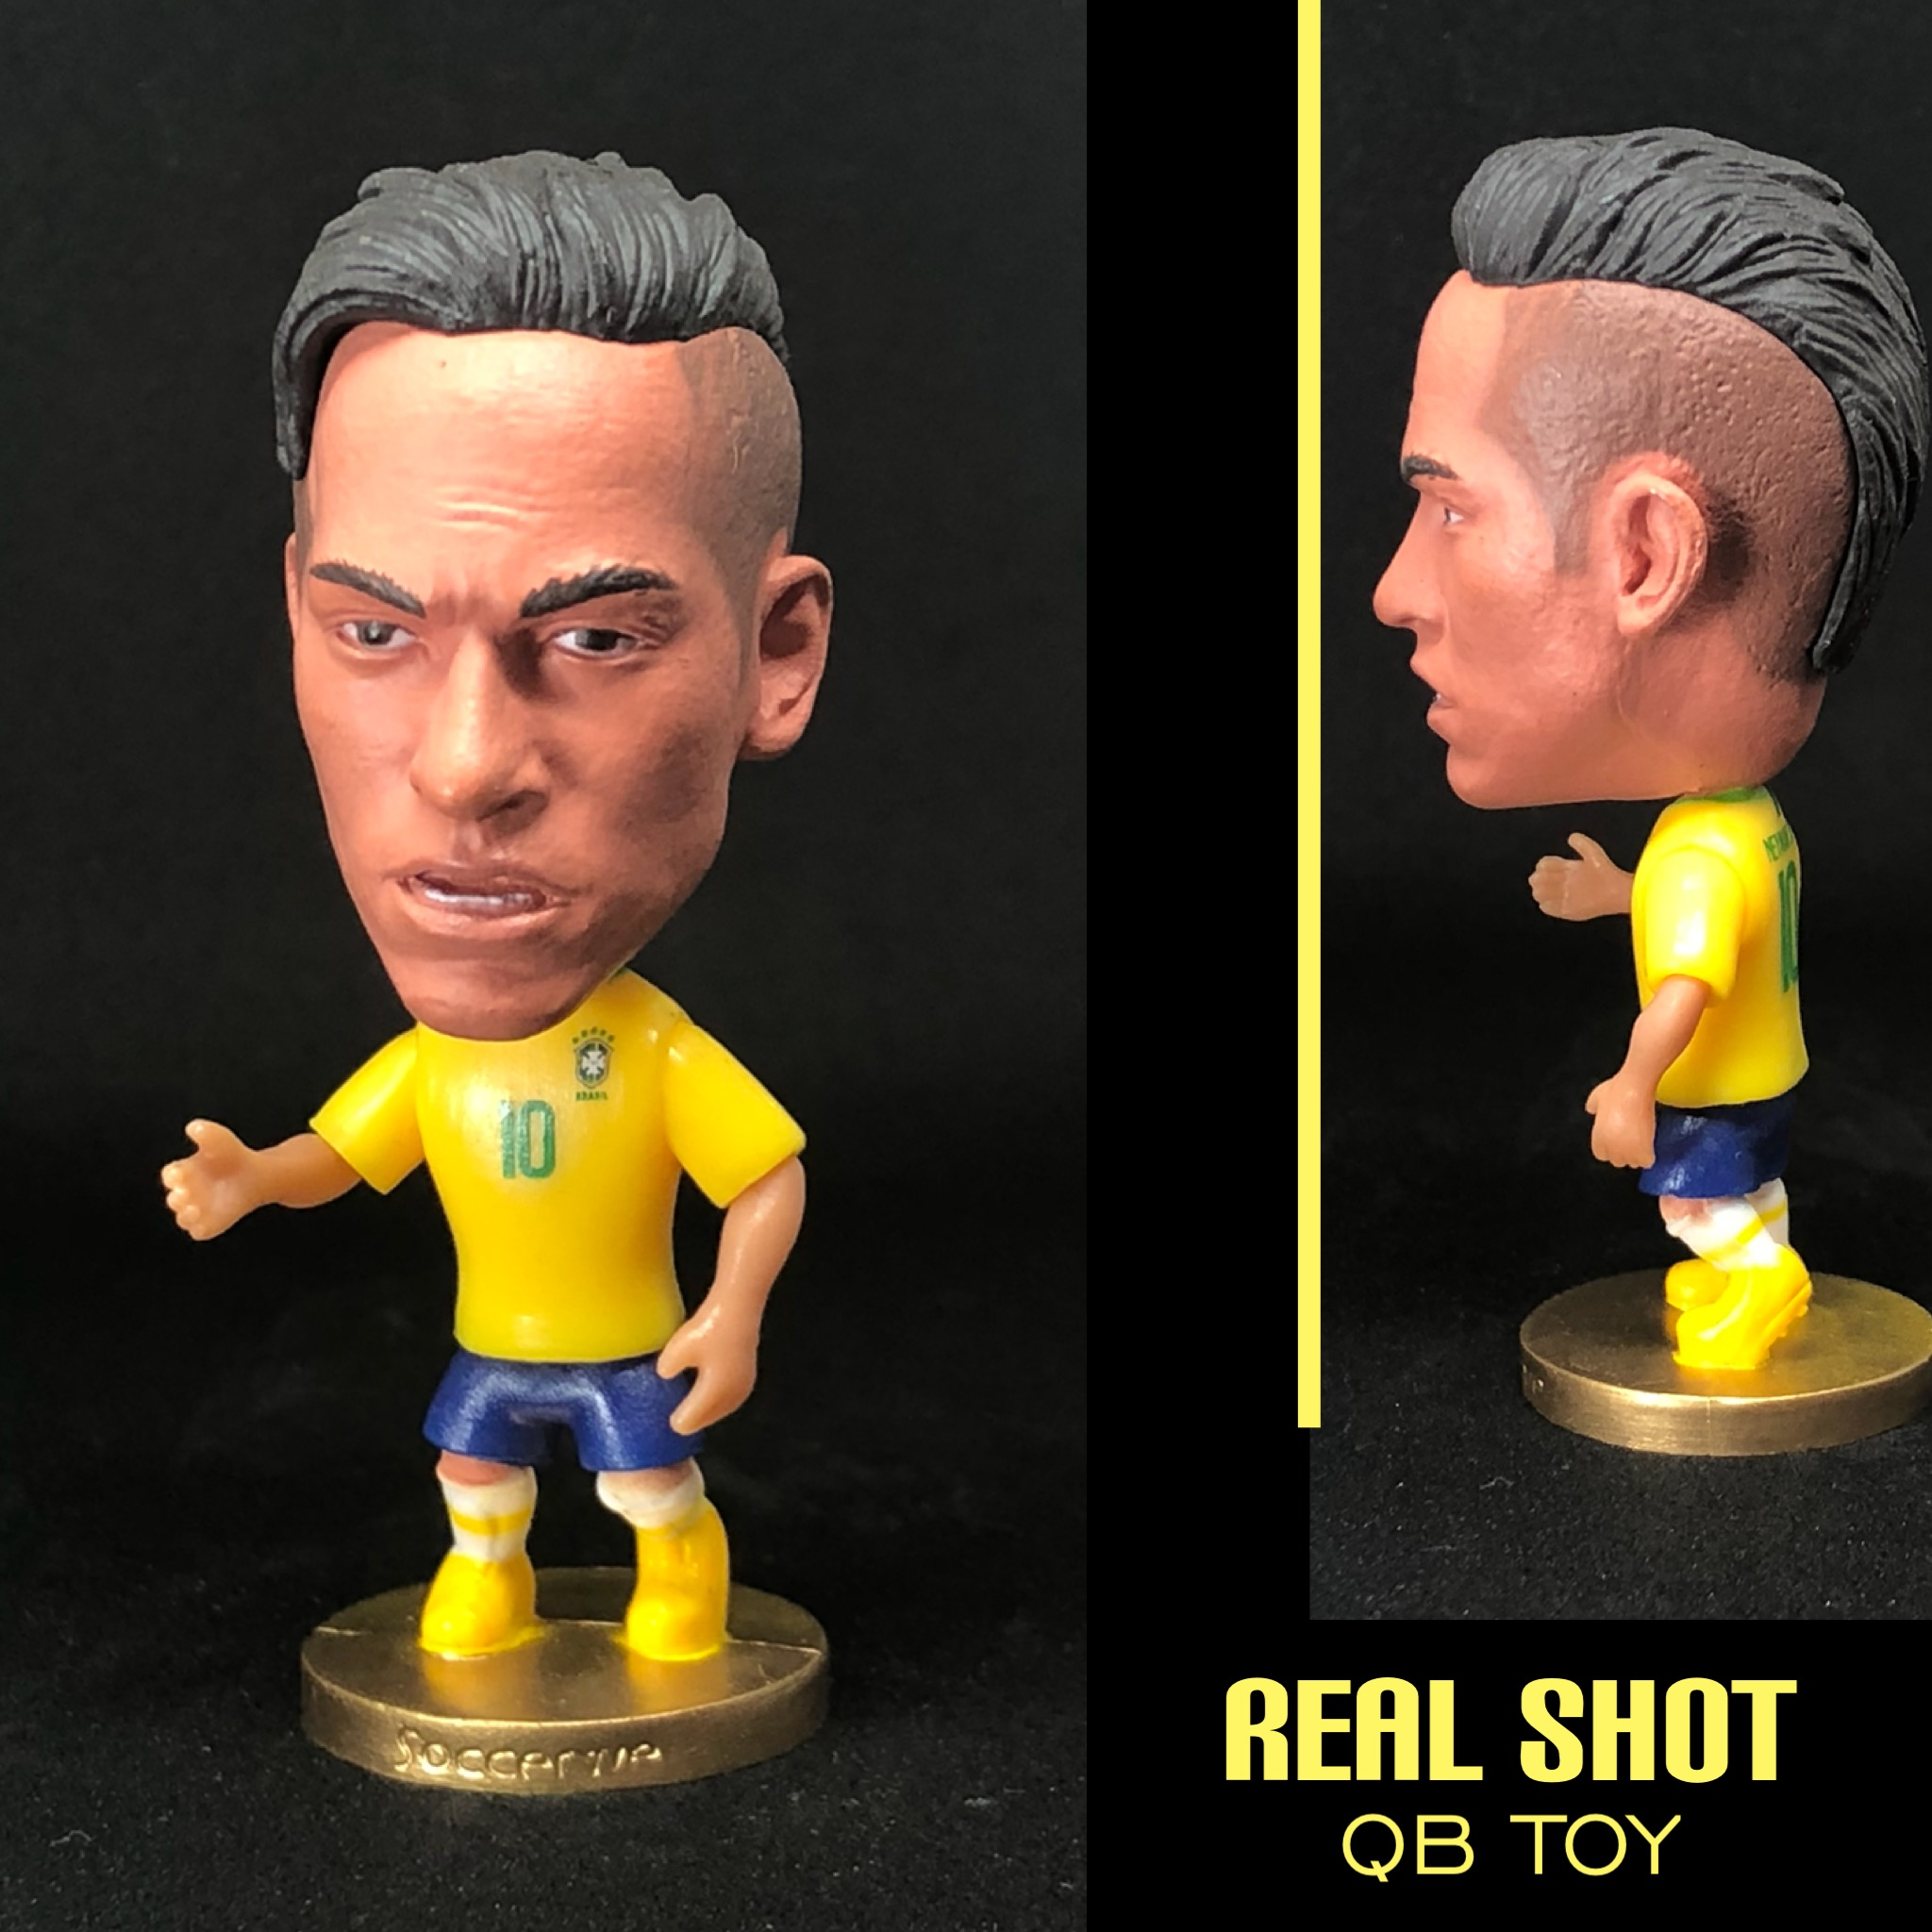 Soccerwe dolls figurine 2019 Brazil Neymar Movable joints resin model jobs toy action figure dolls collectible gift